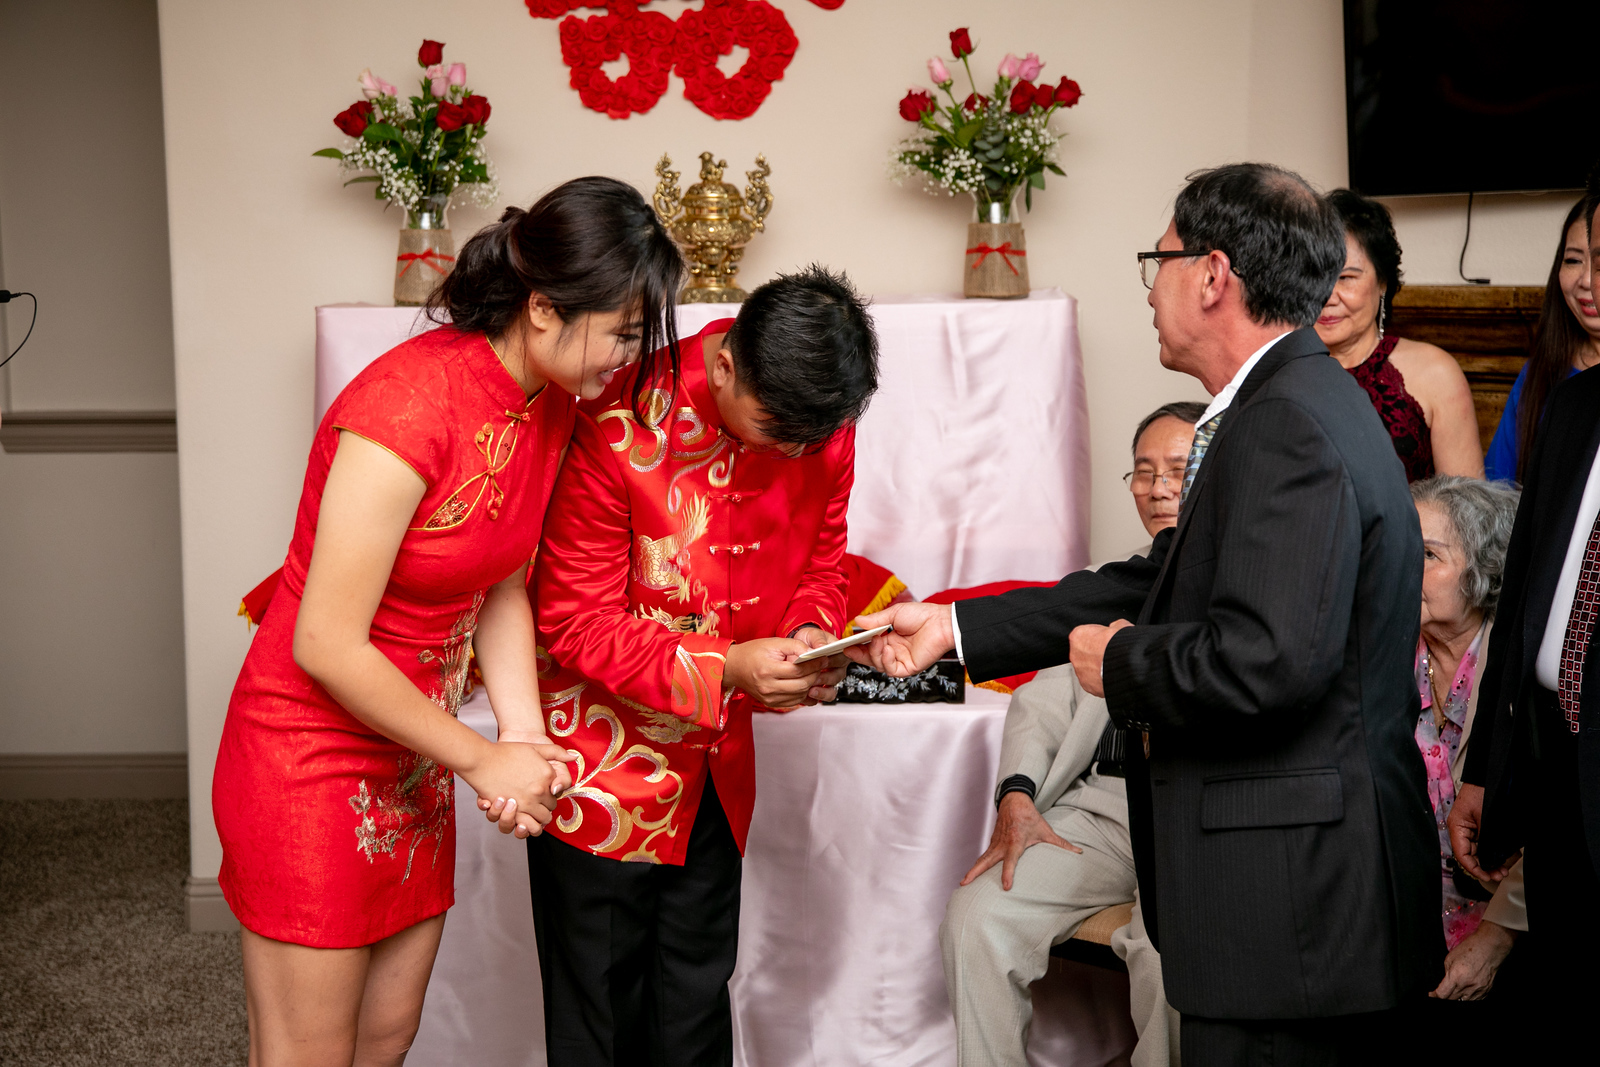 A bride and groom bowing to a man giving them an envelope